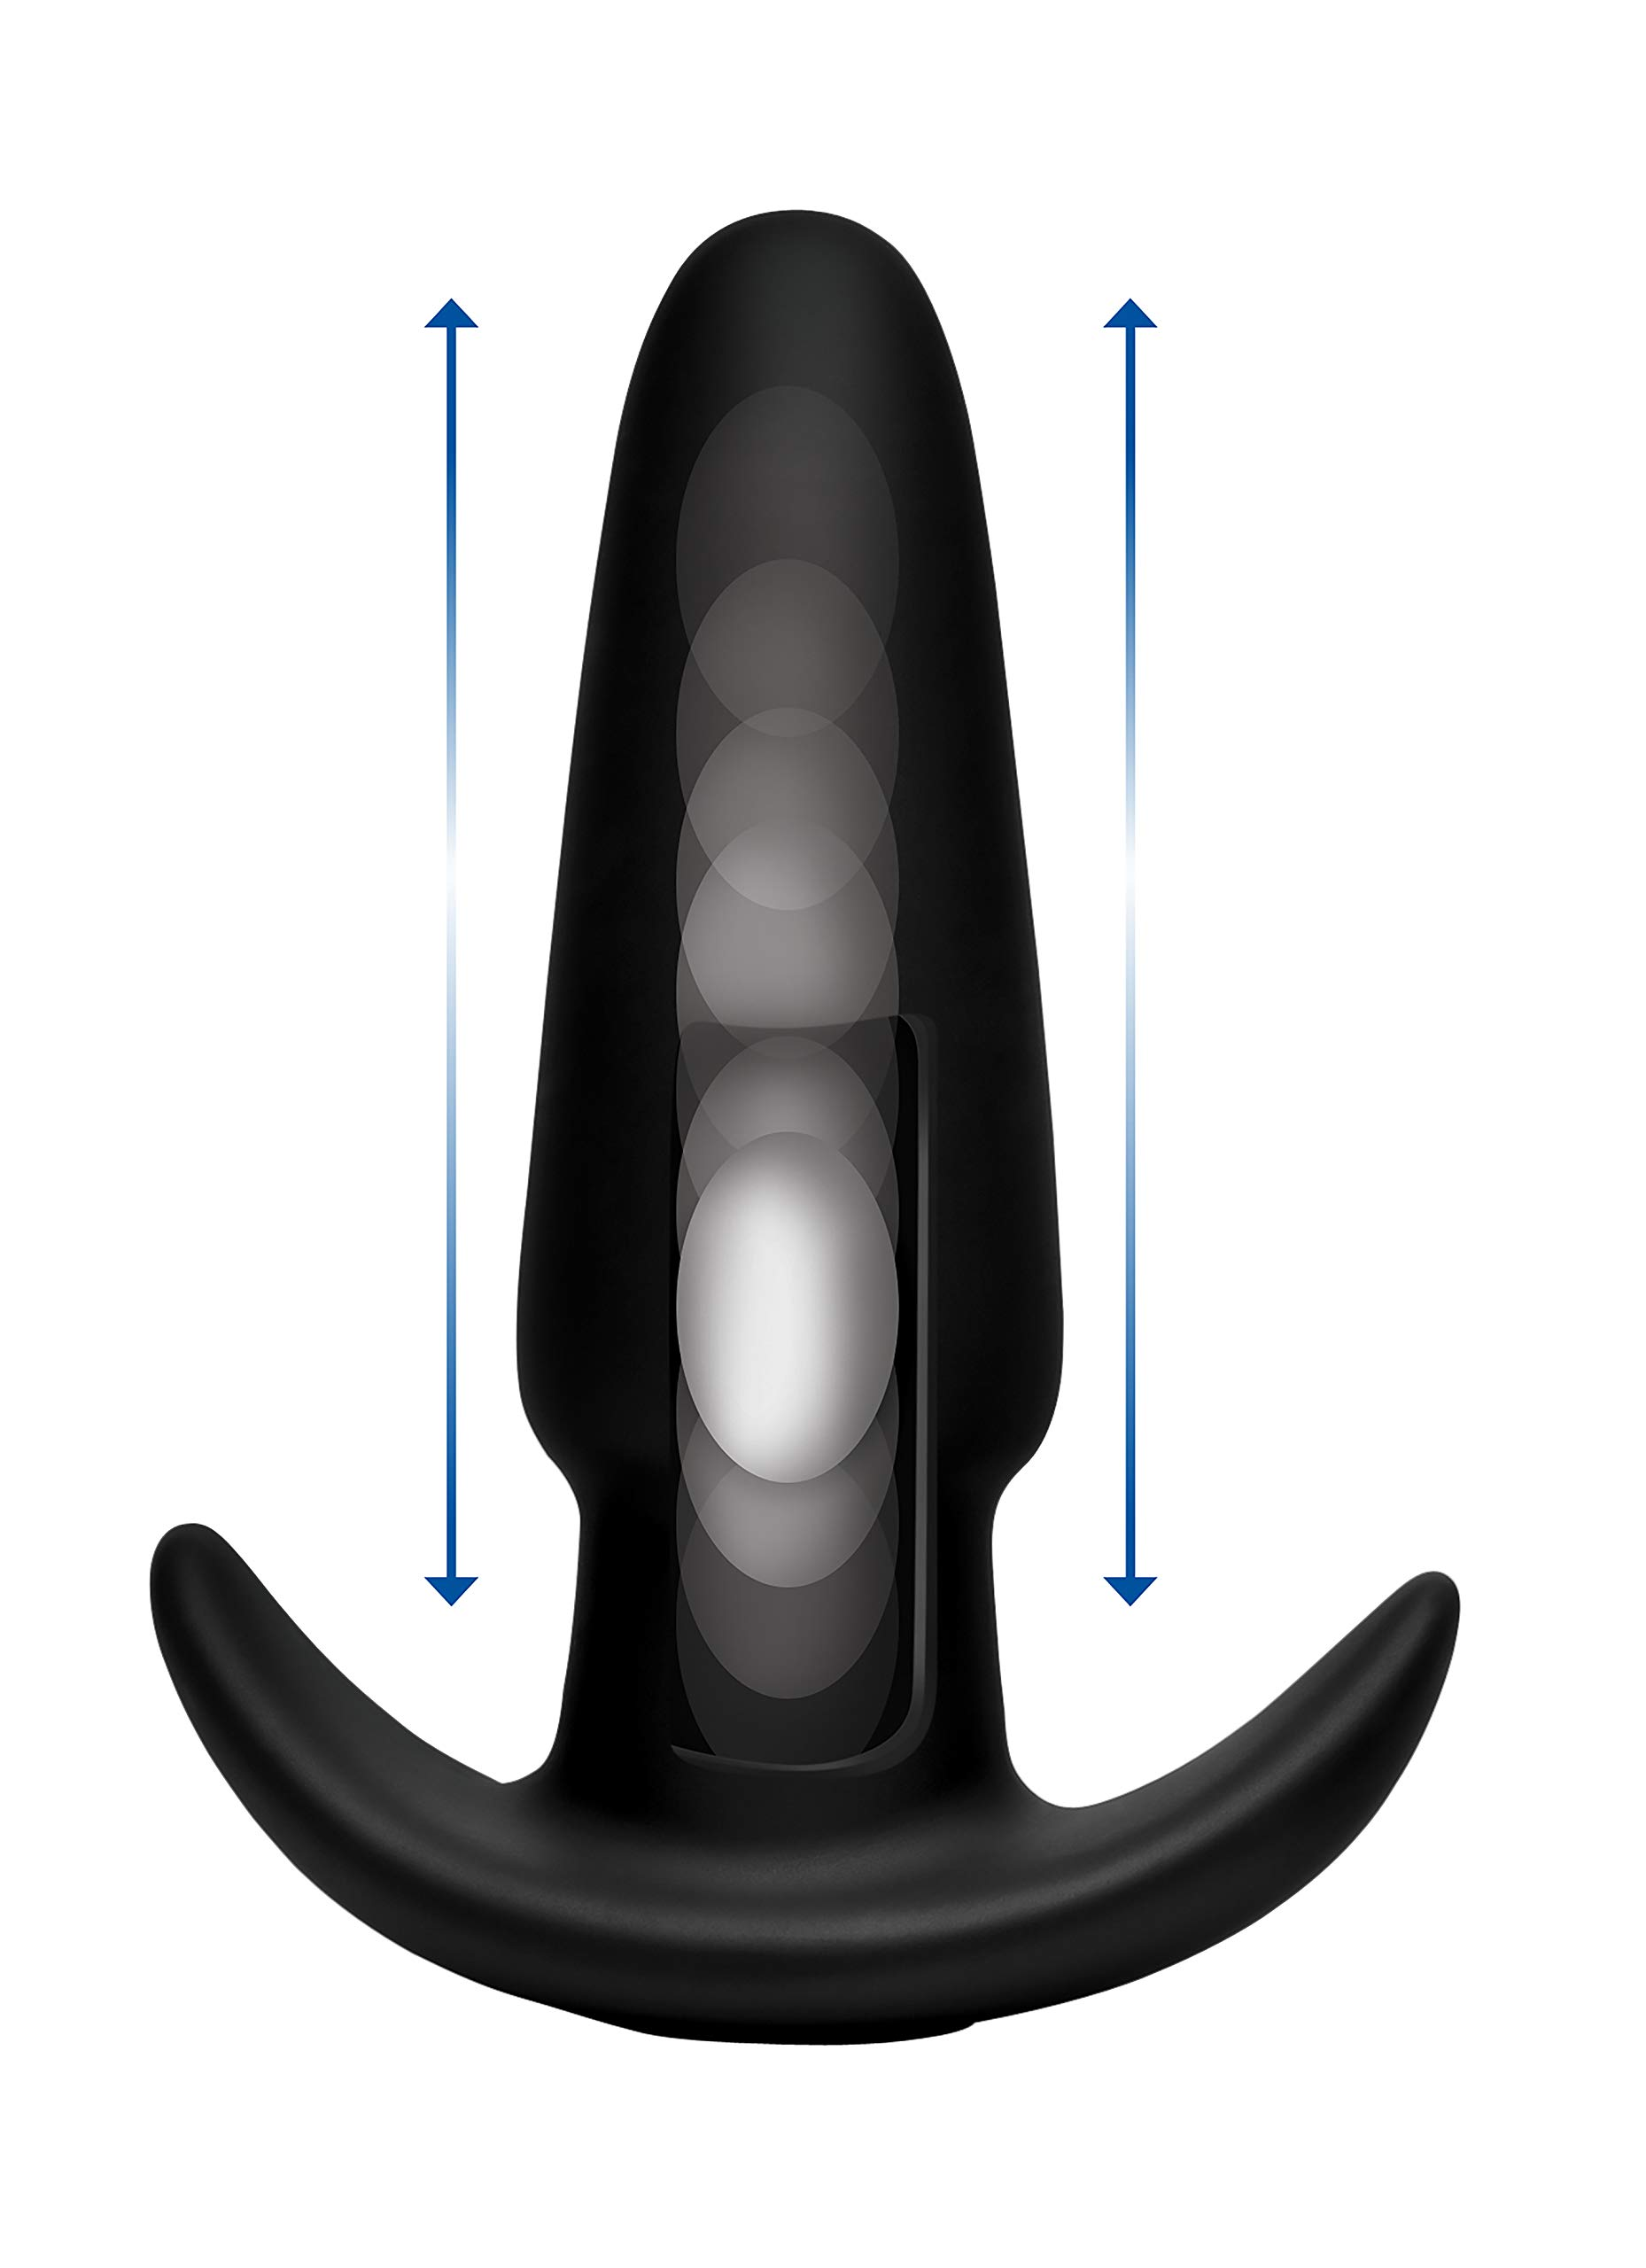 Thump It Kinetic Thumping 7x Anal Plug by Thump It